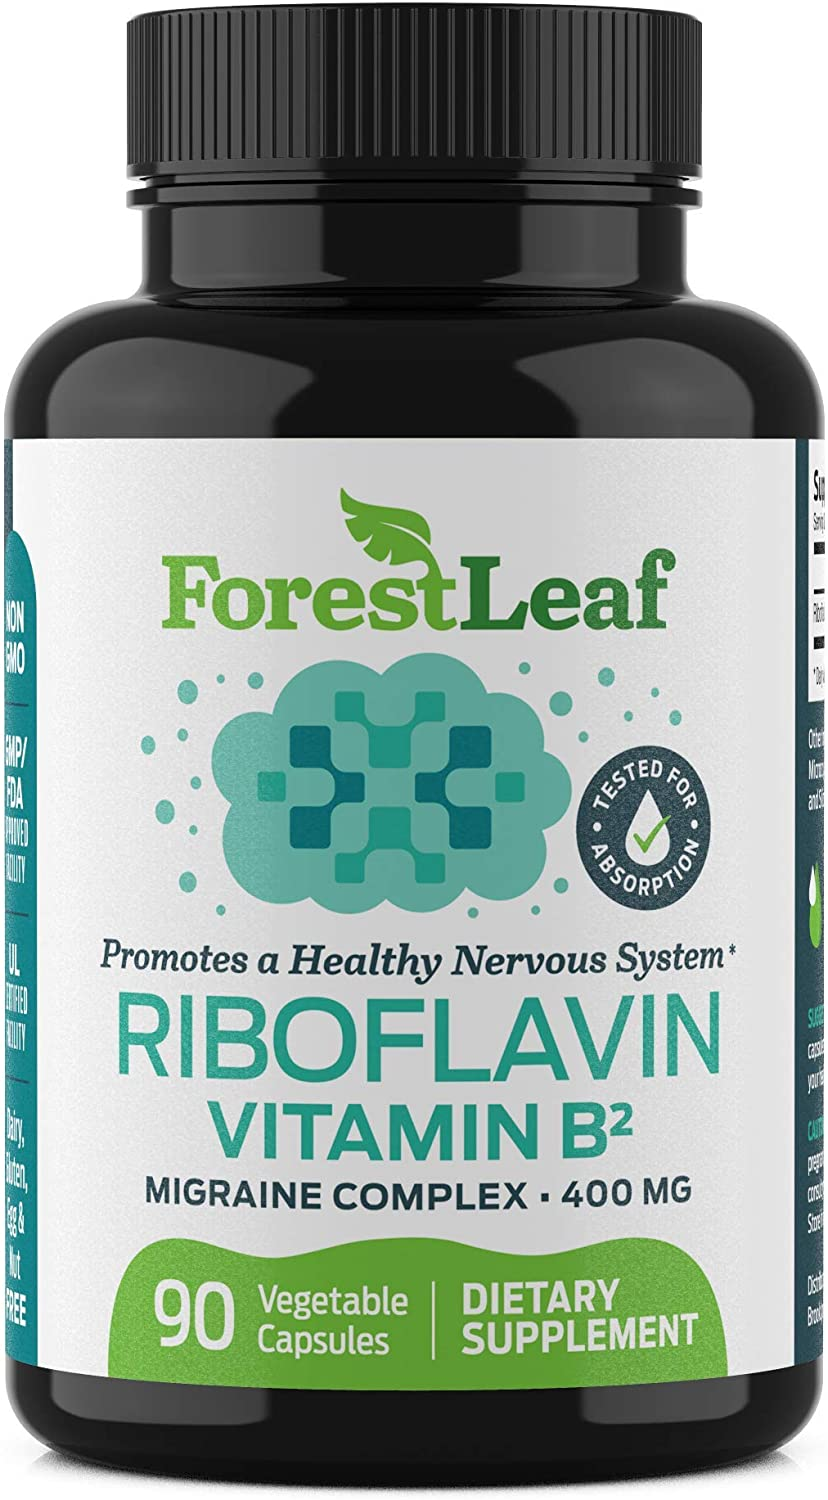 Vitamin B2 Riboflavin, 400mg - 90 Capsules - Promotes Healthier Blood, Nervous System, Energy and Metabolism – Non-GMO, Gluten Free Daily Dietary Supplement – by ForestLeaf